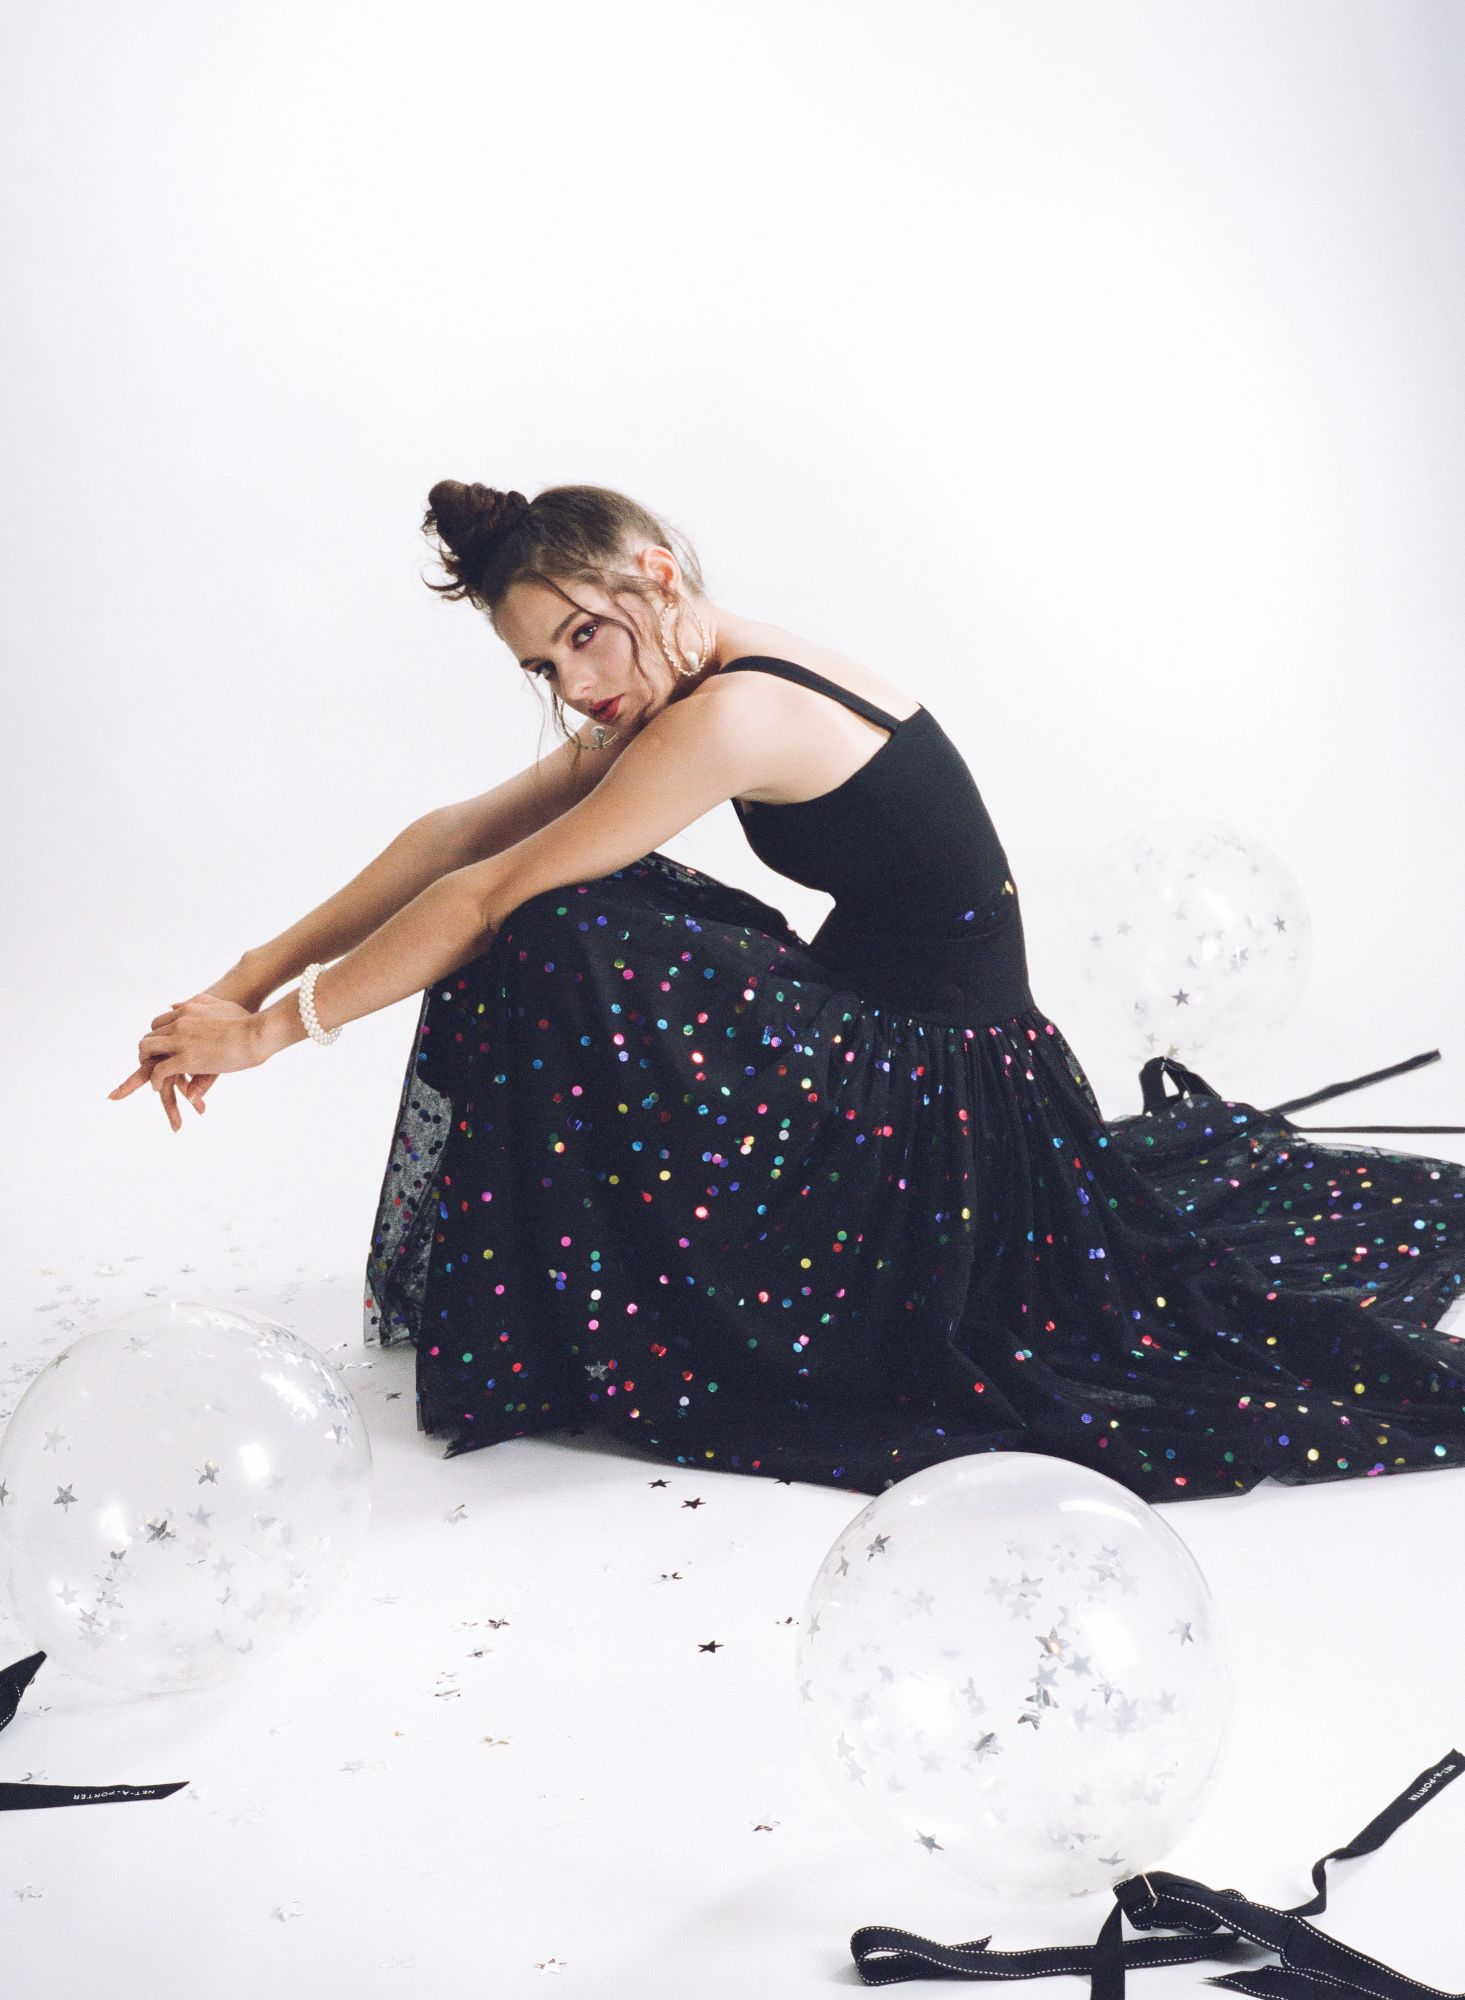 Shop The Shoot: Festive Dresses For All Your Holiday Parties